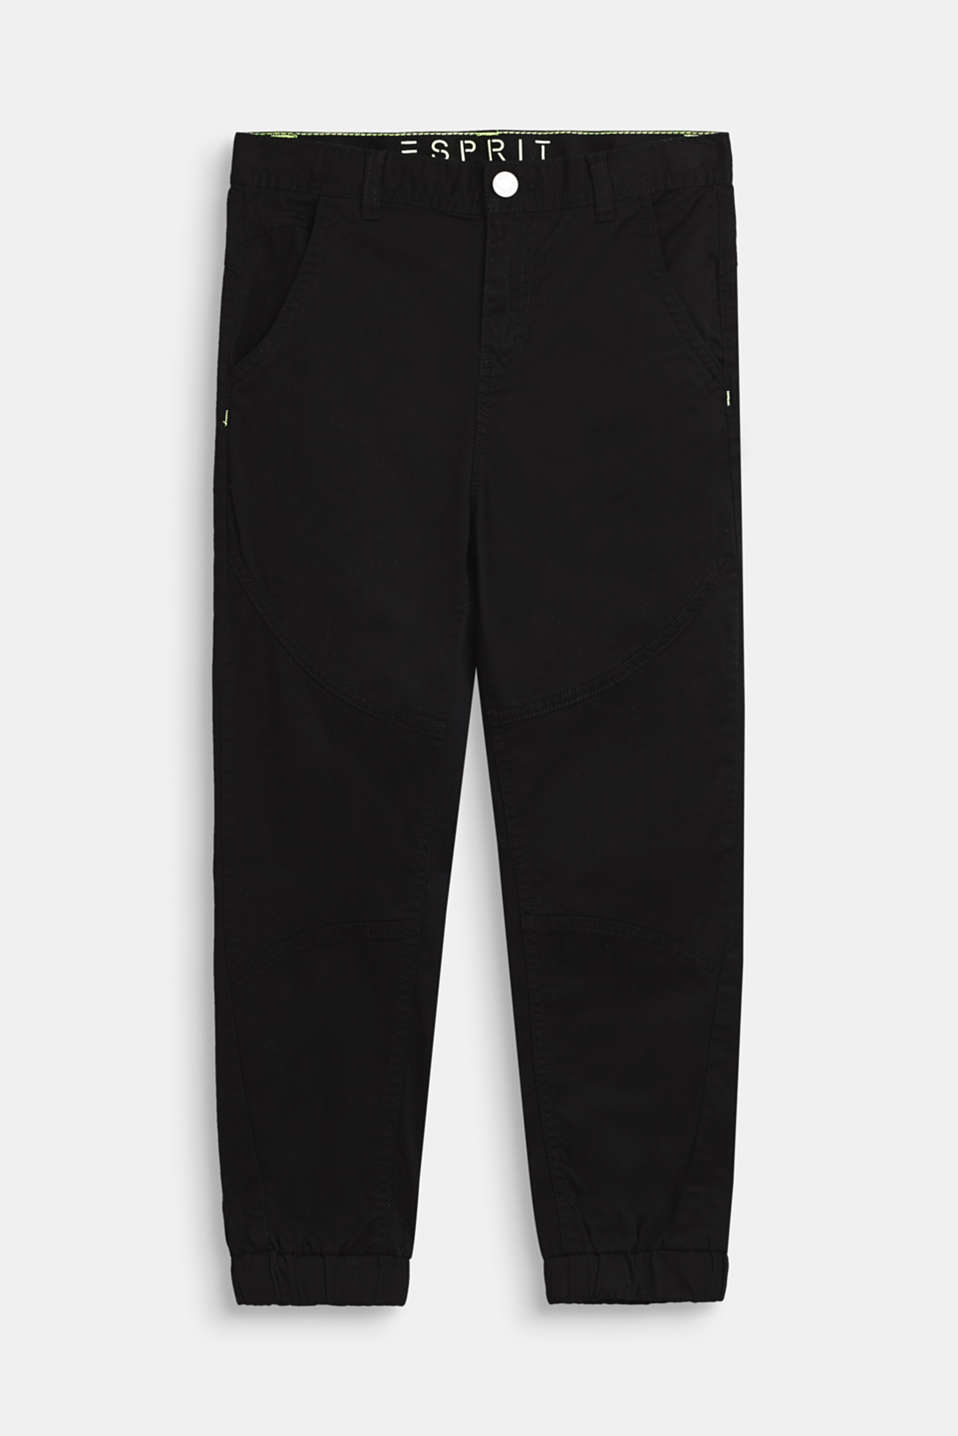 Esprit - Twill trousers in a biker style, made of stretch cotton